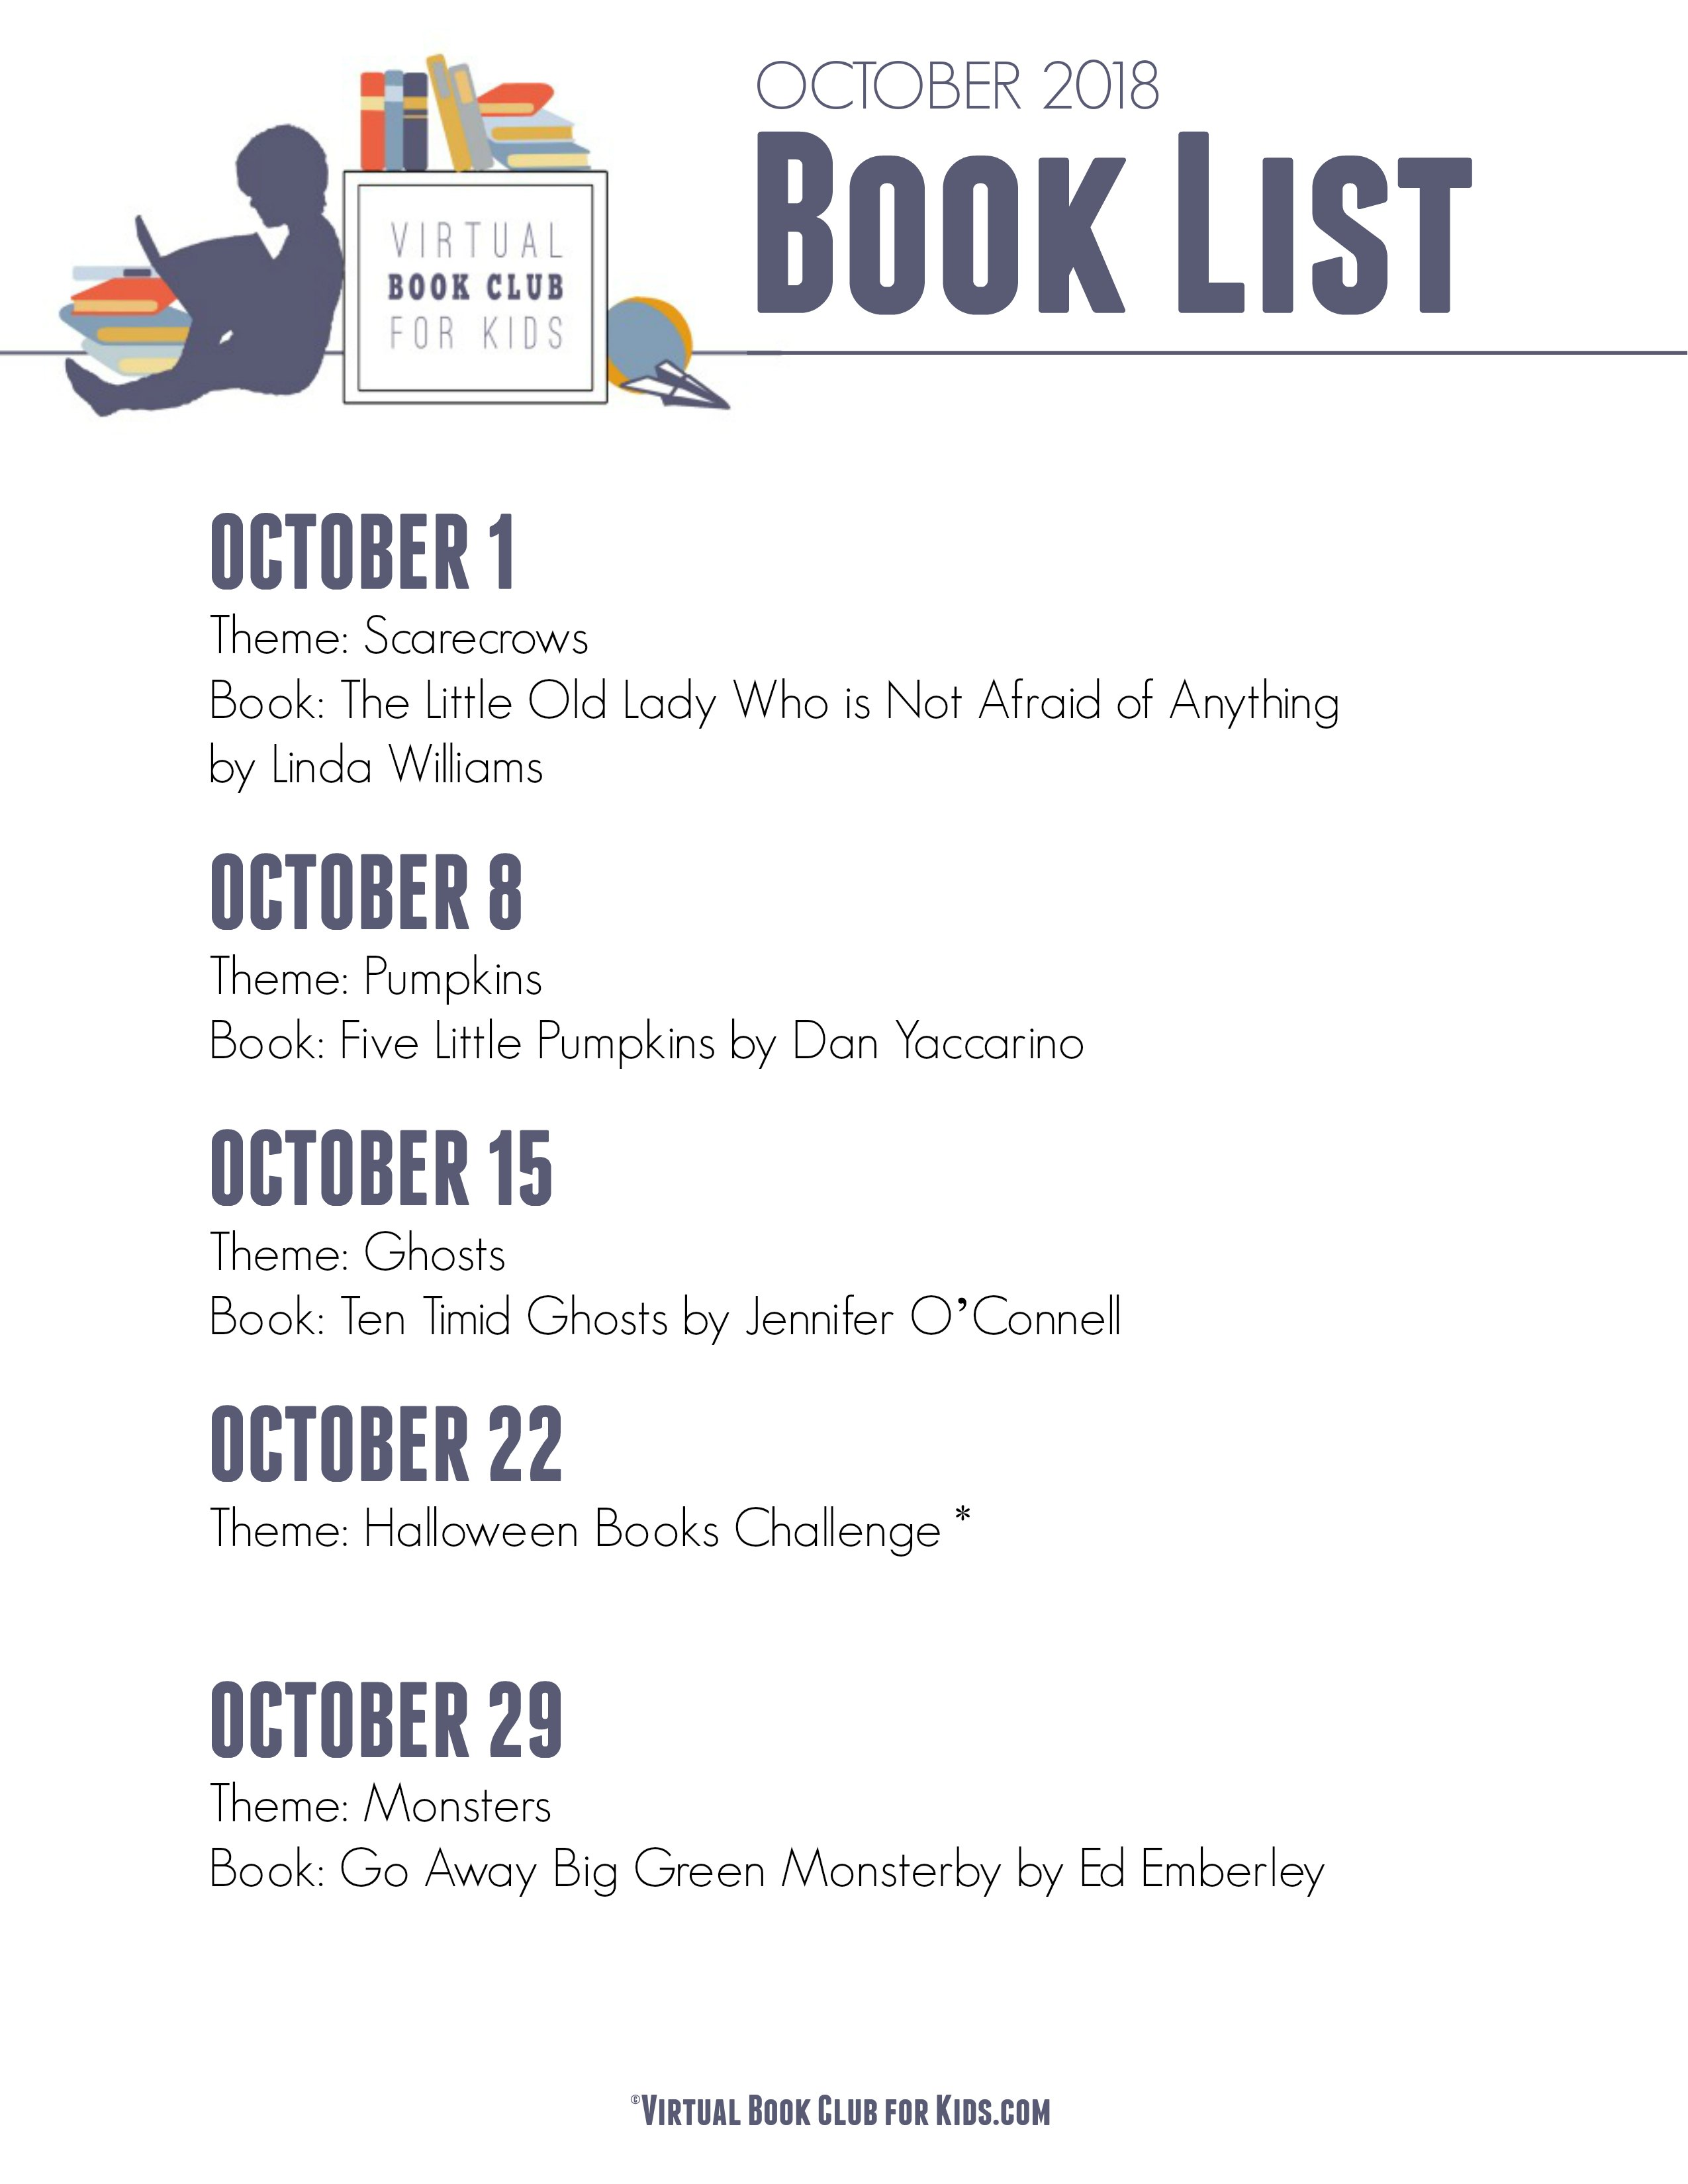 Theme and book list for the Virtual Book Club for Kids for the Month of October